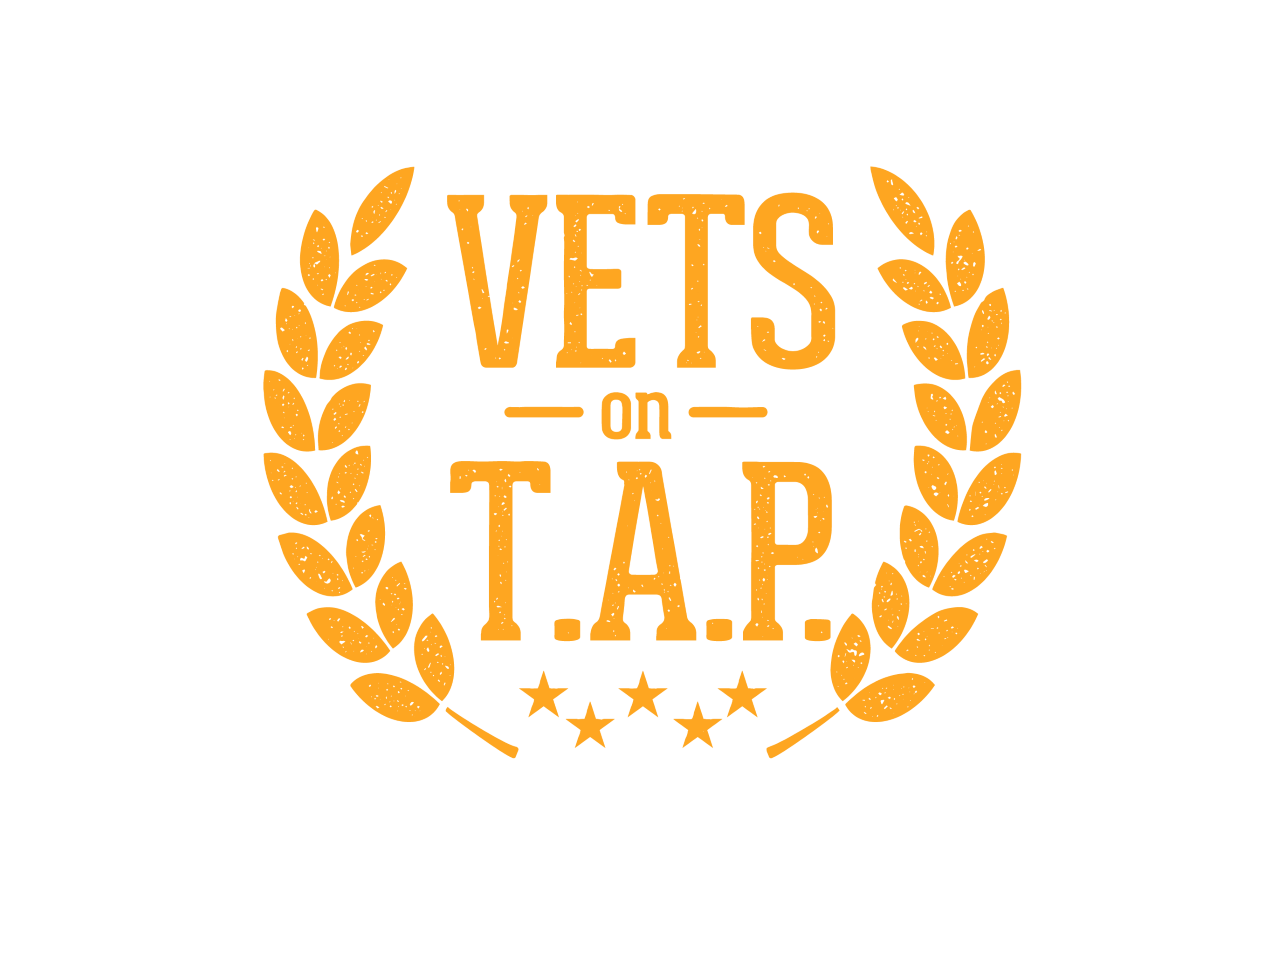 Vets on T.A.P.